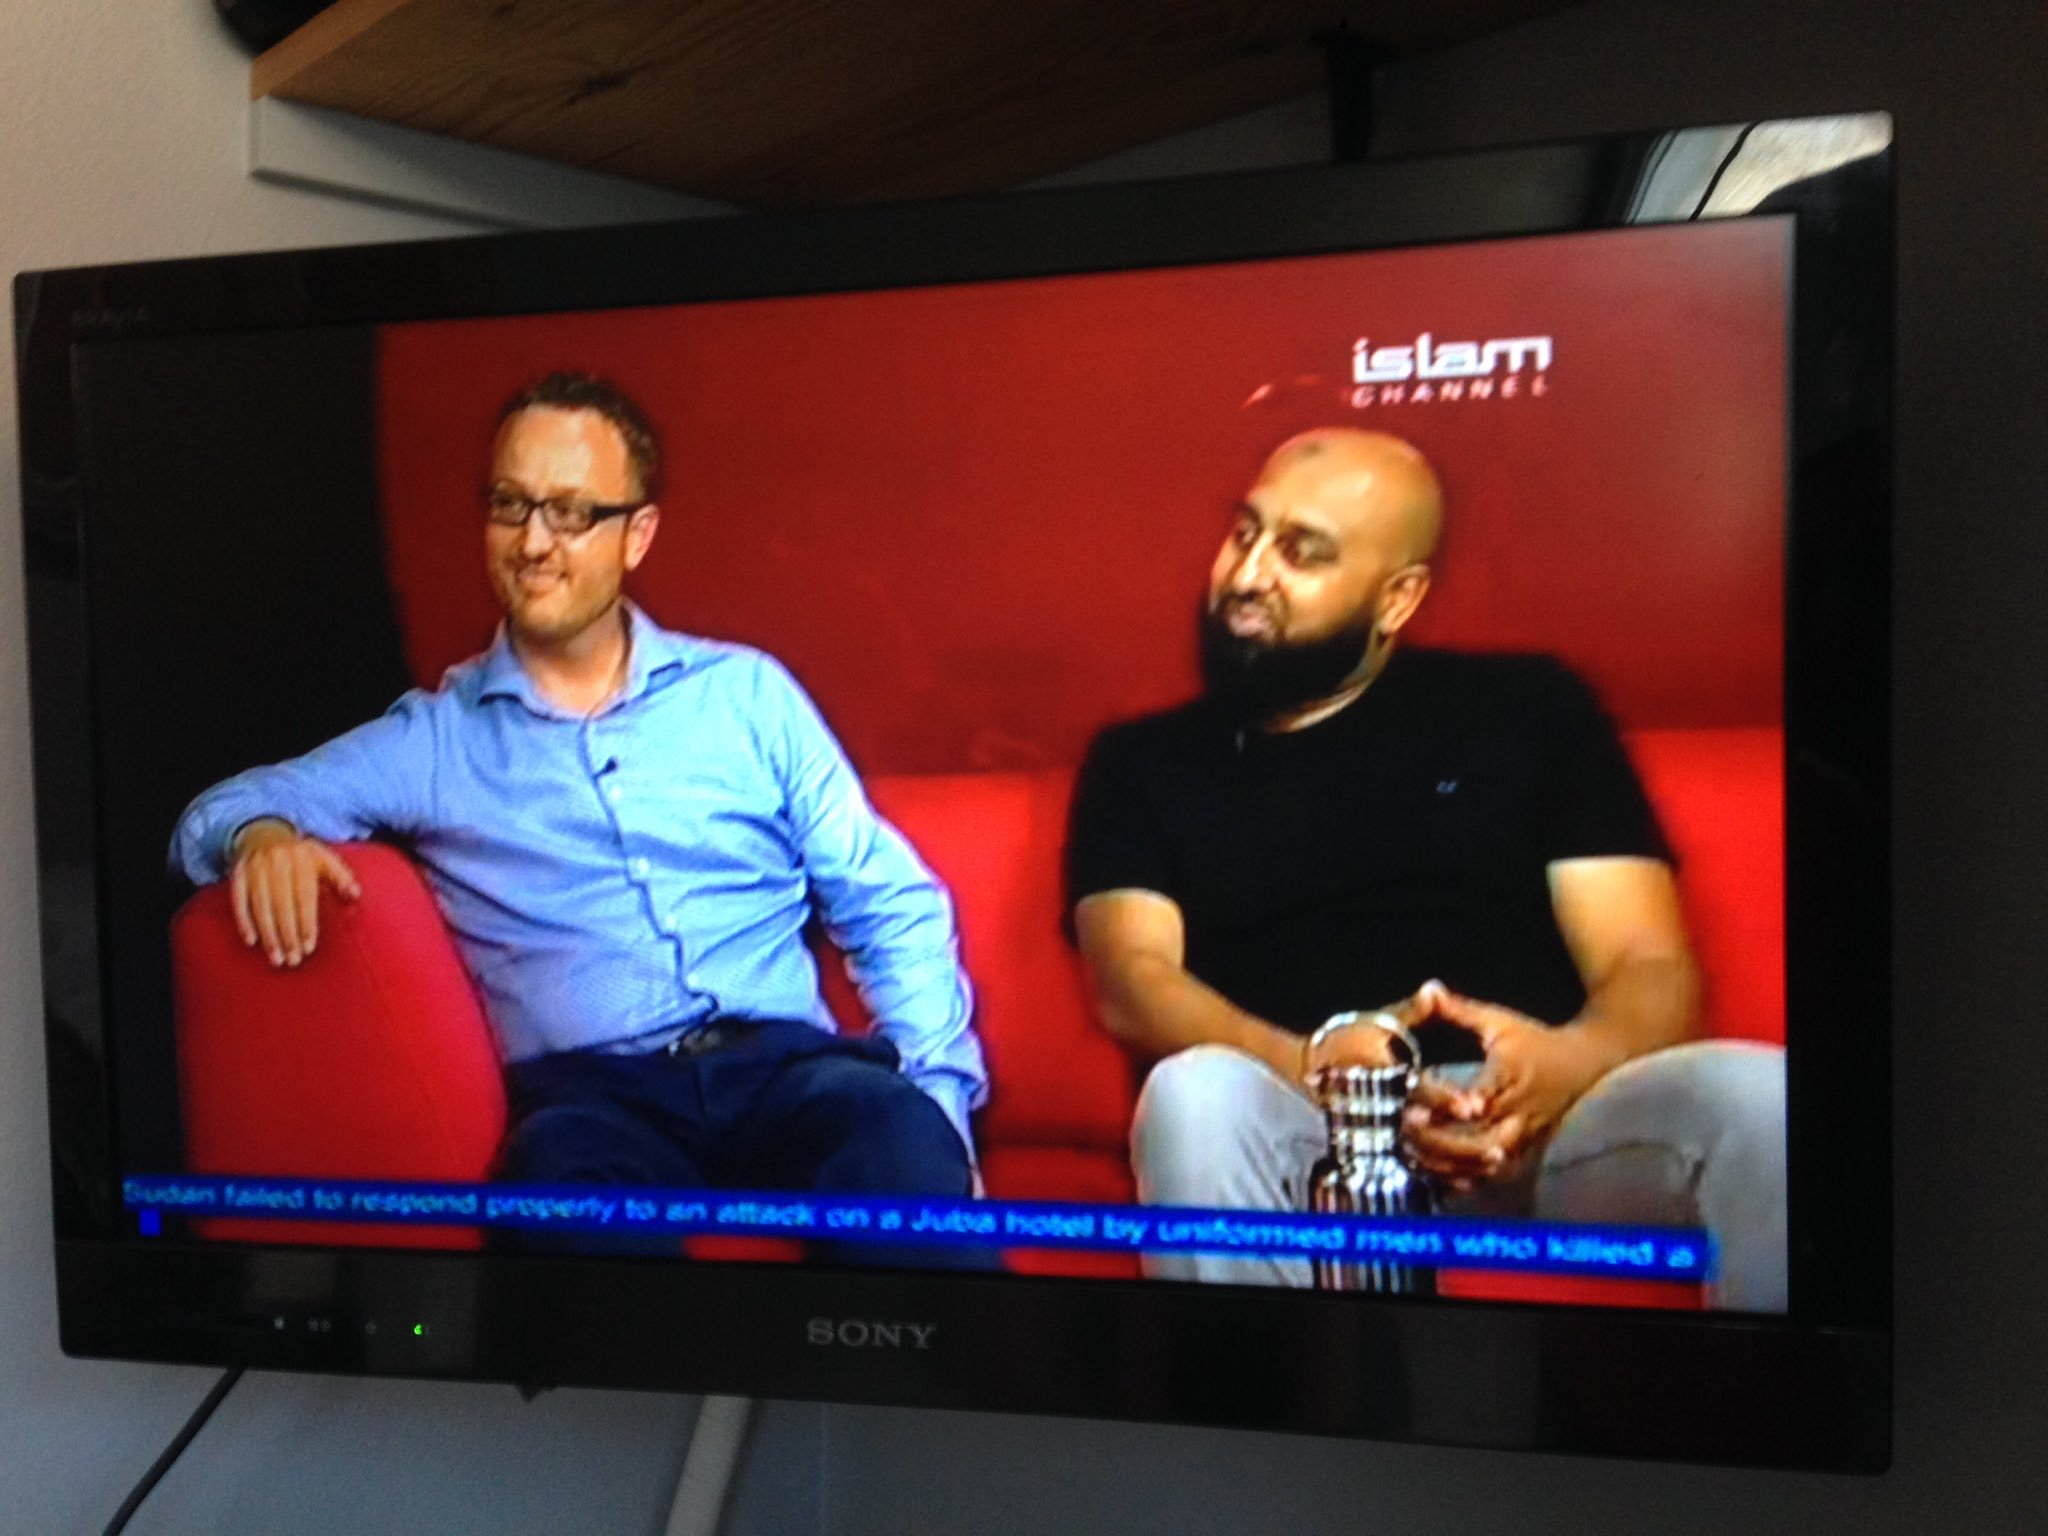 Tobias and Harun on TV